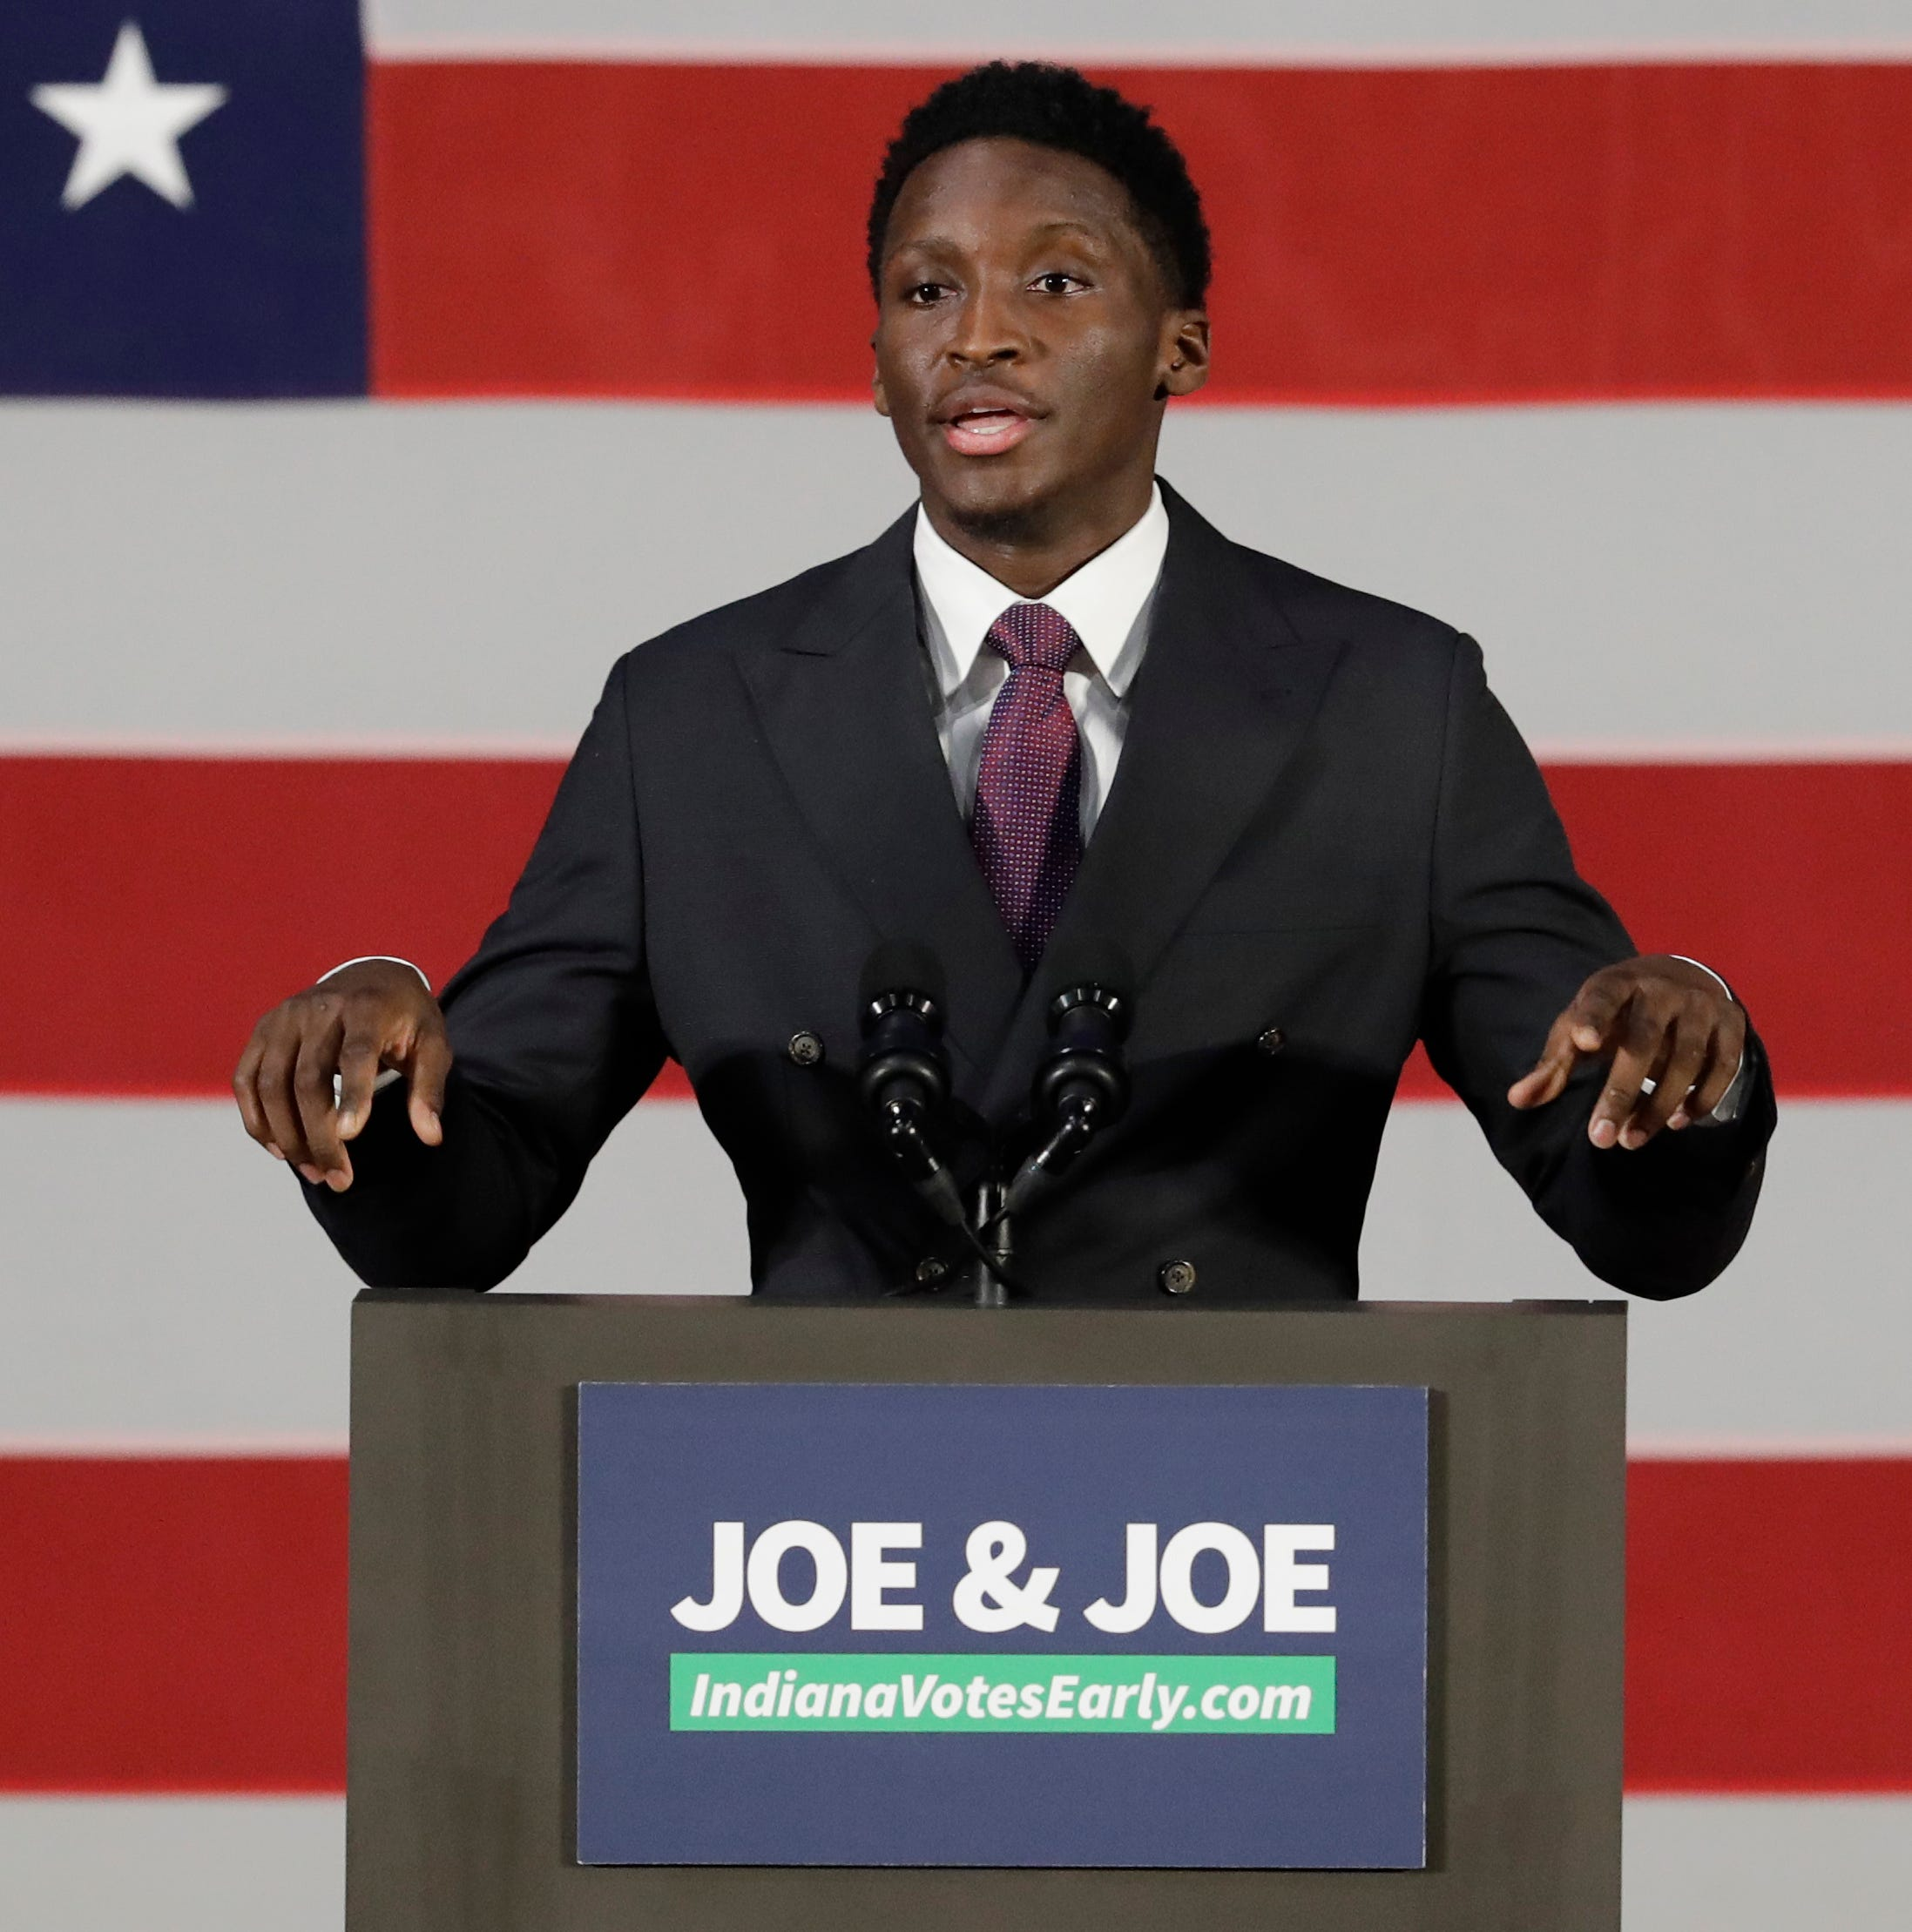 Swarens: Victor Oladipo has future in politics, if he wants it